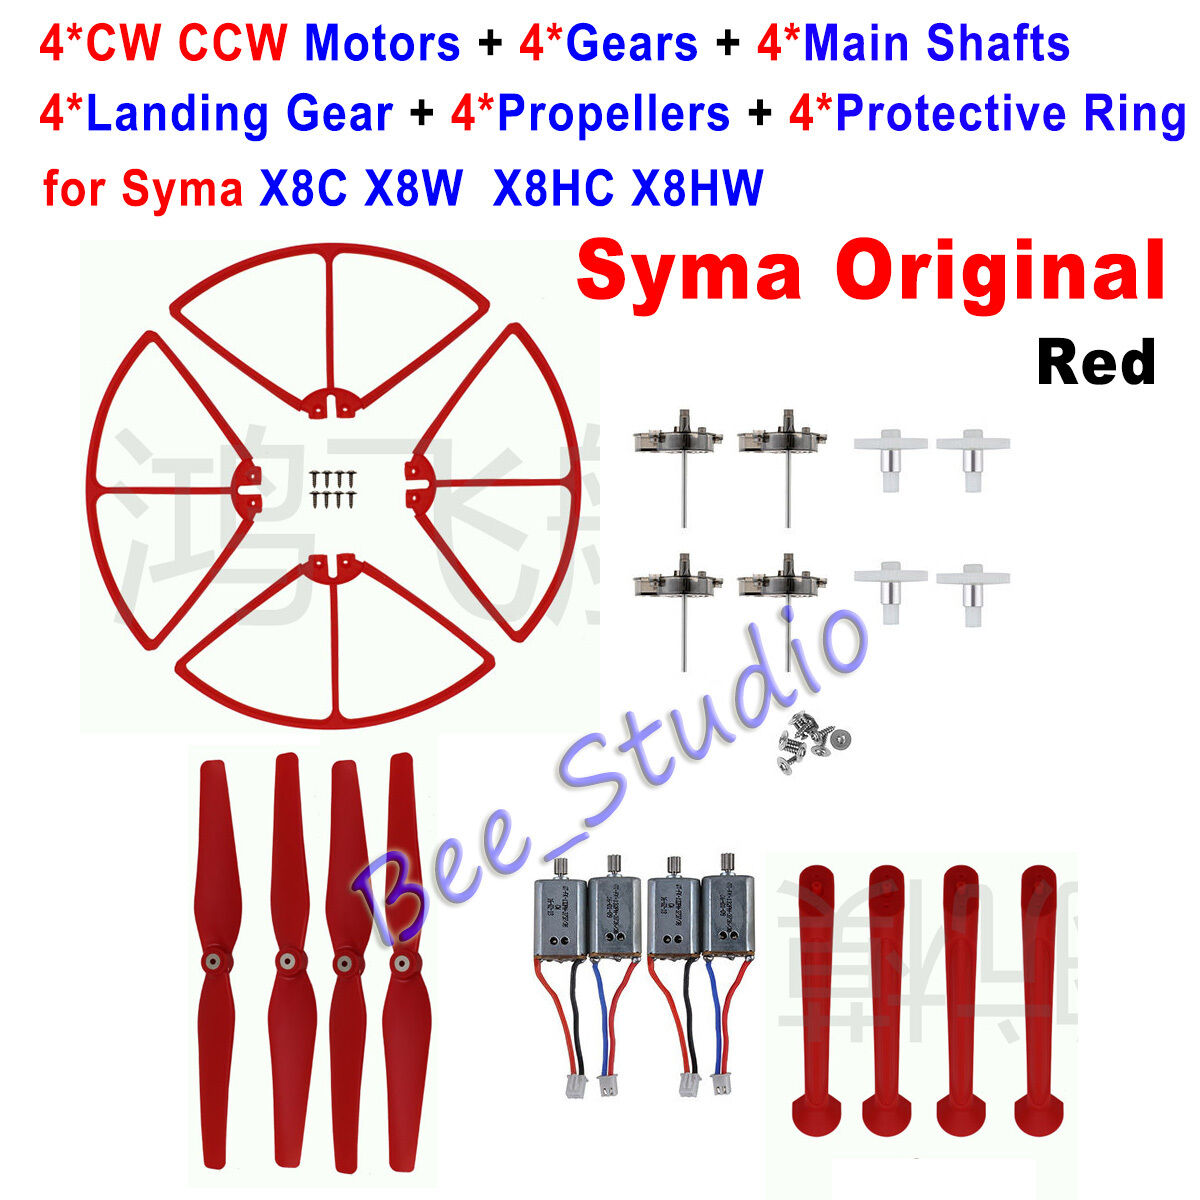 New Crash Pack Kit Spare Parts For Syma X8c X8w X8hc X8hw Rc Drone. Red New Crash Pack Kit Spare Parts For Syma X8c X8w X8hc X8hw Rc Drone Quadcopter. Wiring. Syma X8 Wiring Diagram At Scoala.co